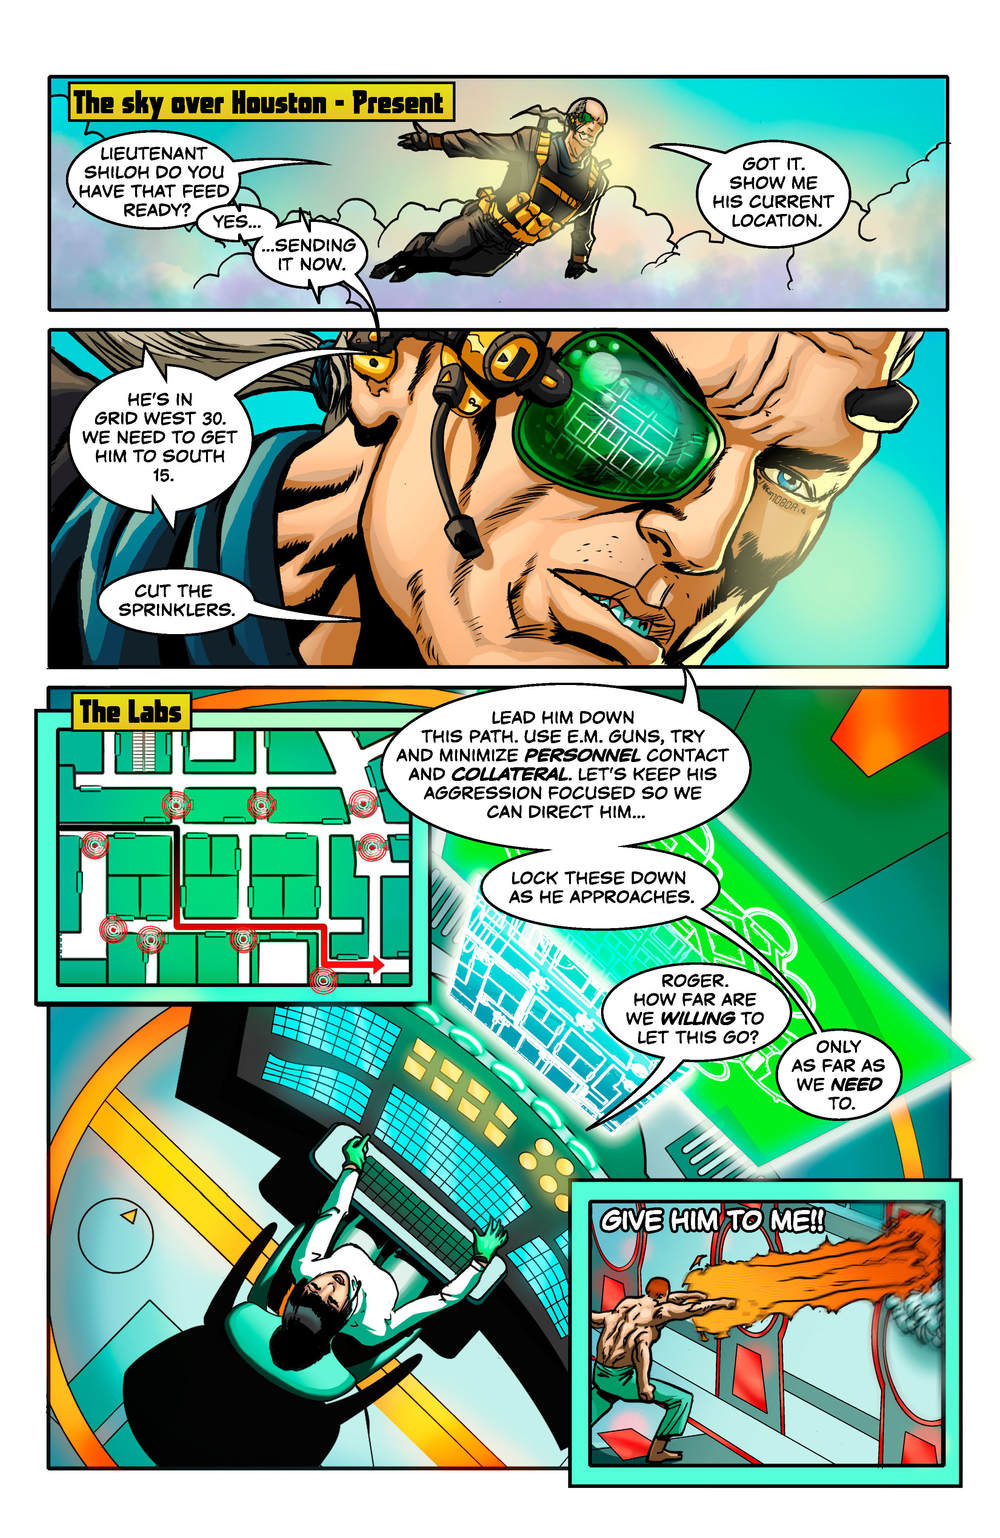 TT_Issue02_Digital_Page_13.jpg